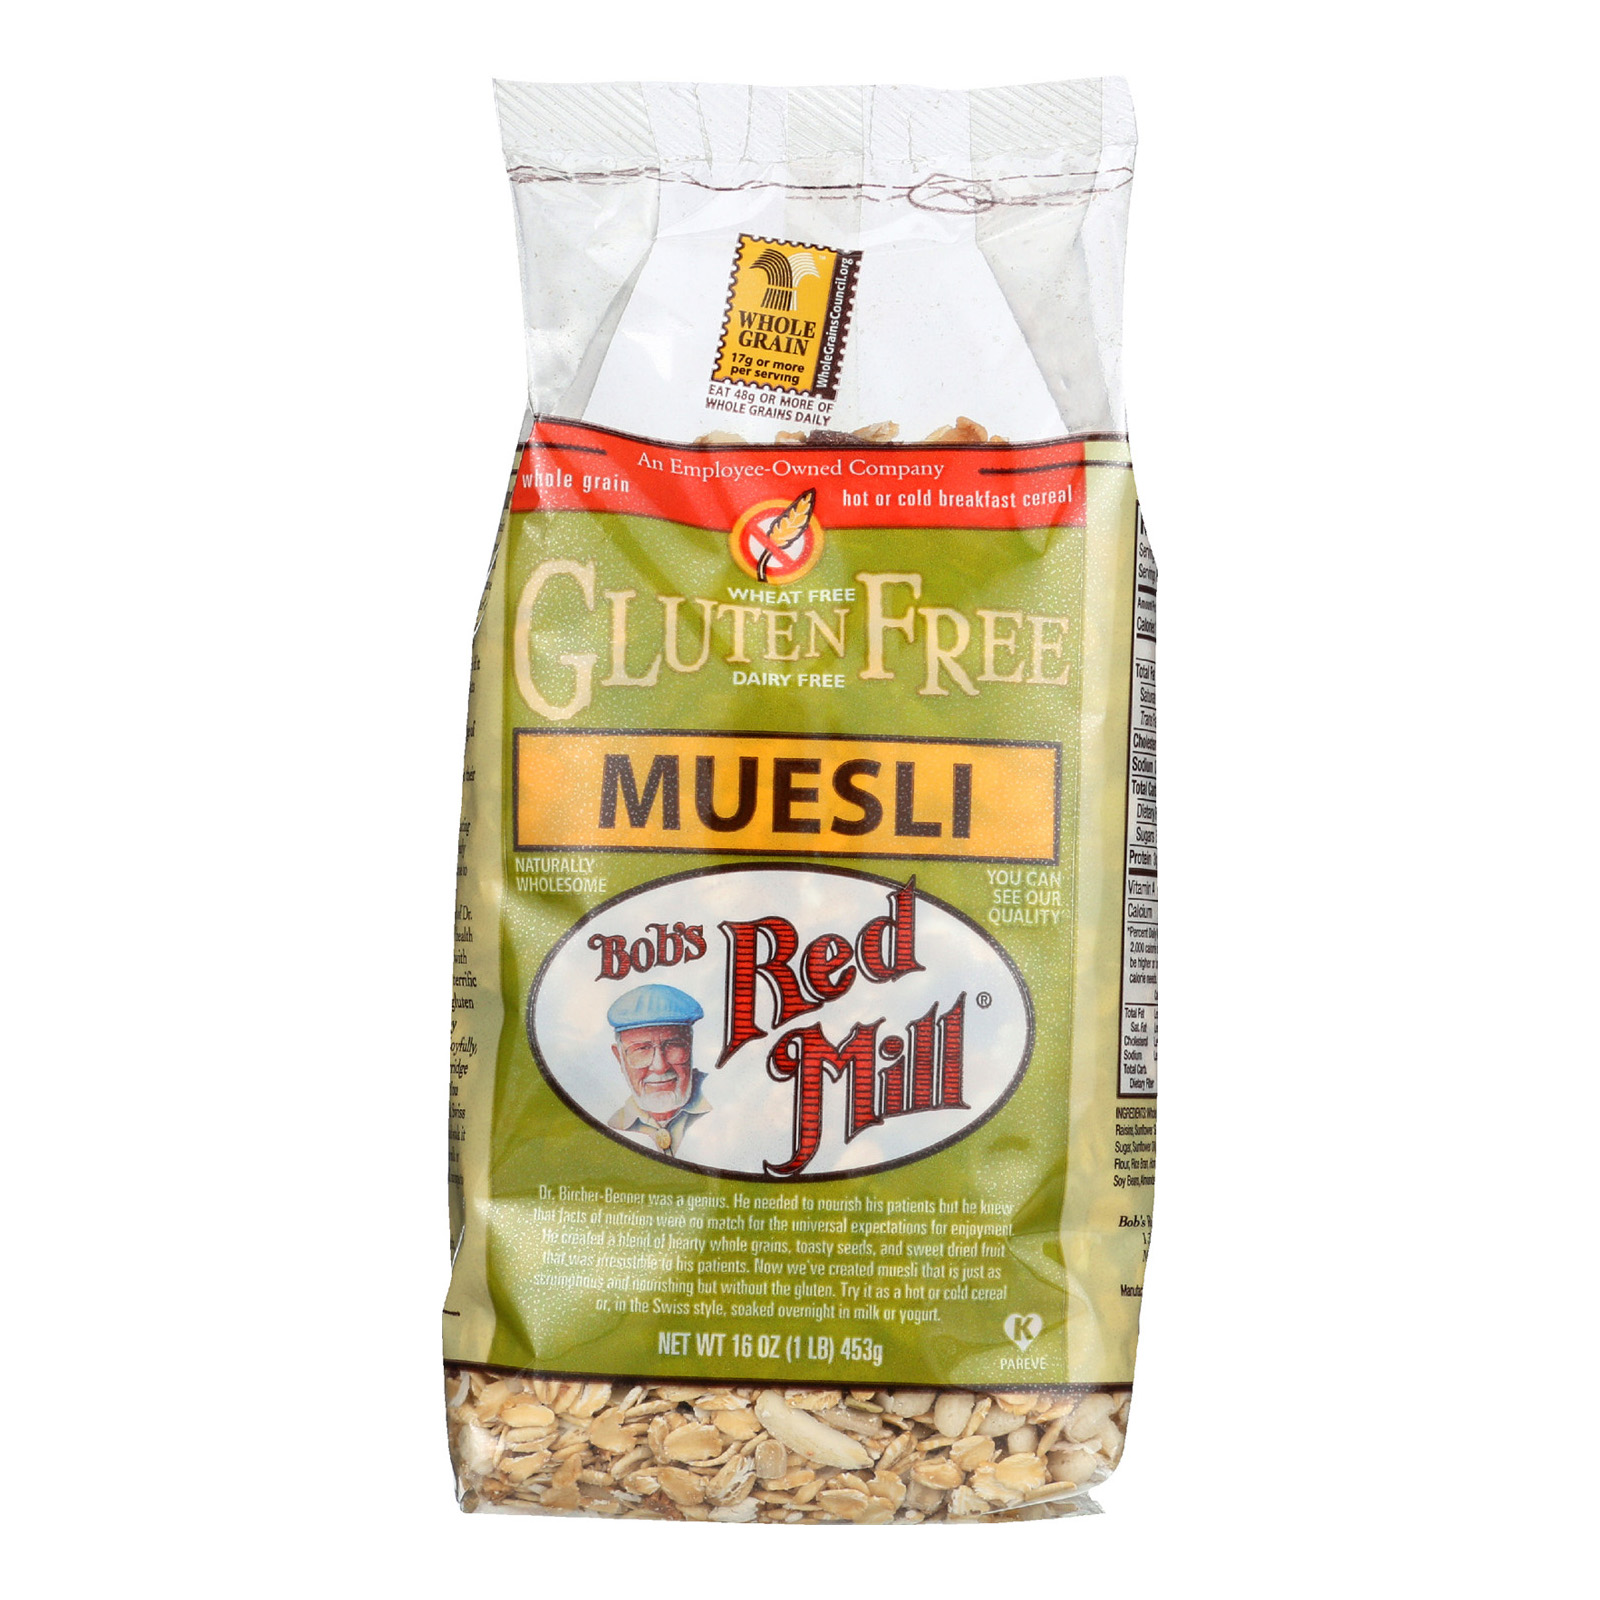 Bob's Red Mill Gluten Free Muesli Cereal - 16 oz - Case of 4